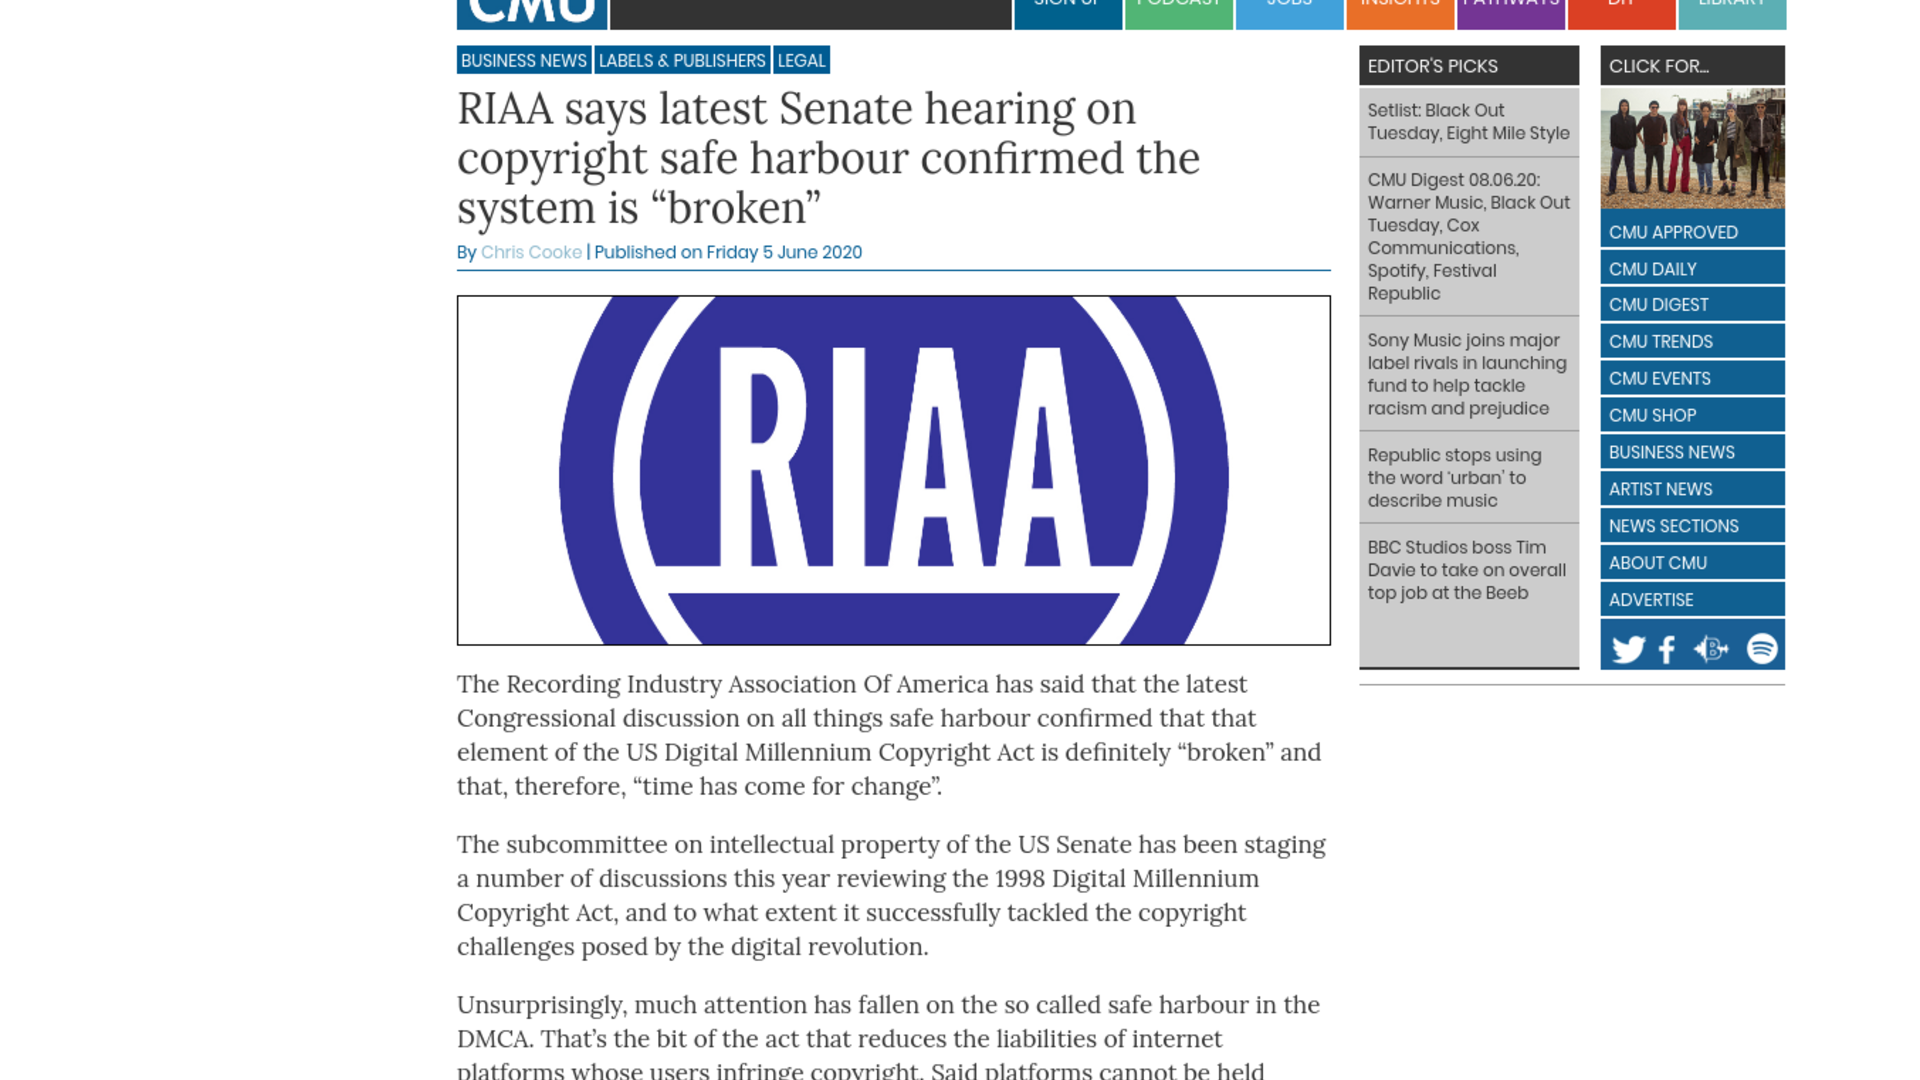 """Fairness Rocks News RIAA says latest Senate hearing on copyright safe harbour confirmed the system is """"broken"""""""